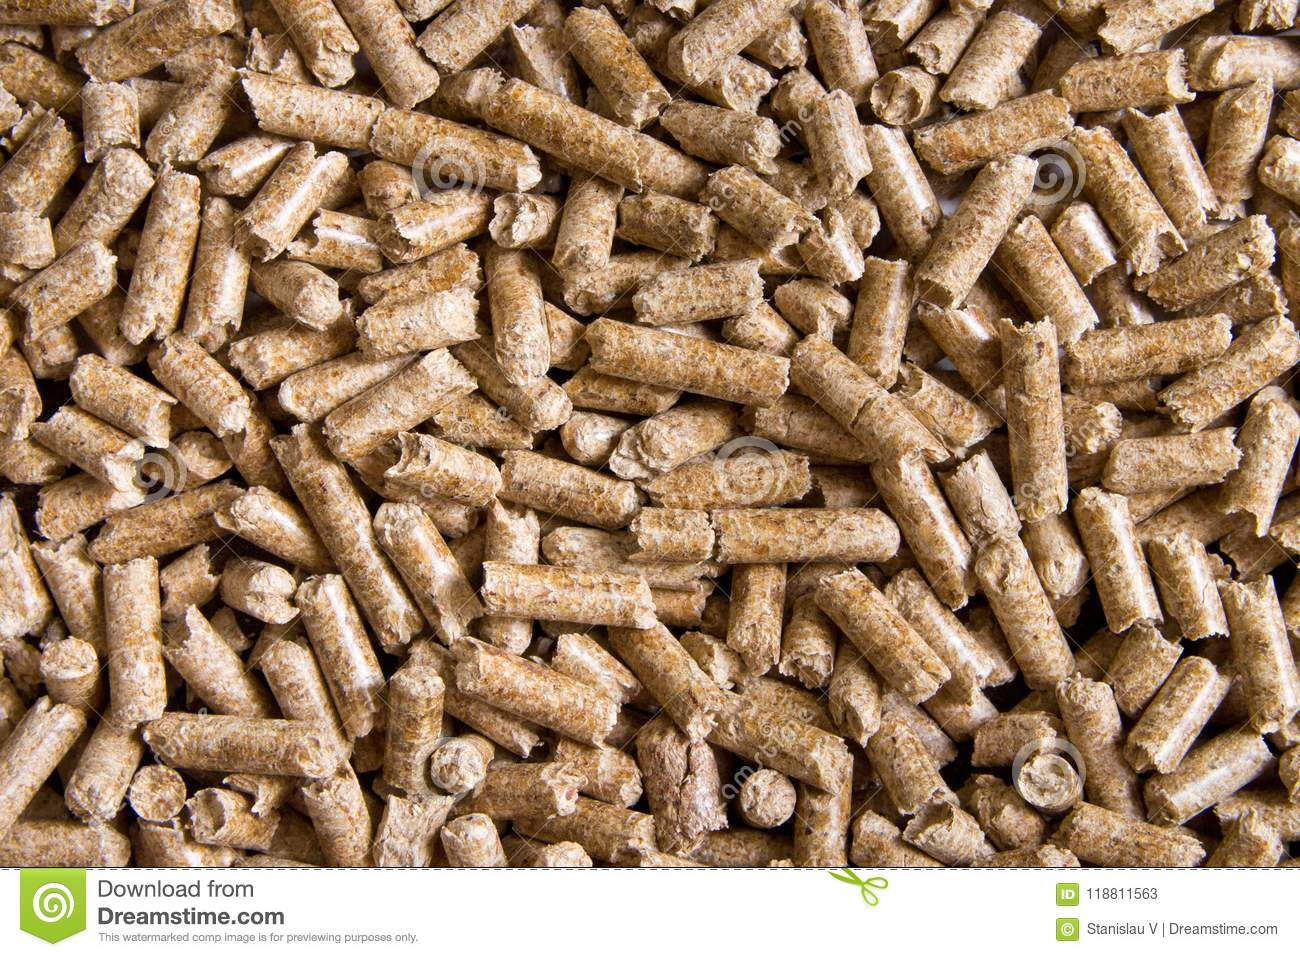 Wood pellets close up .Biofuels. Biomass Pellets - cheap energy.